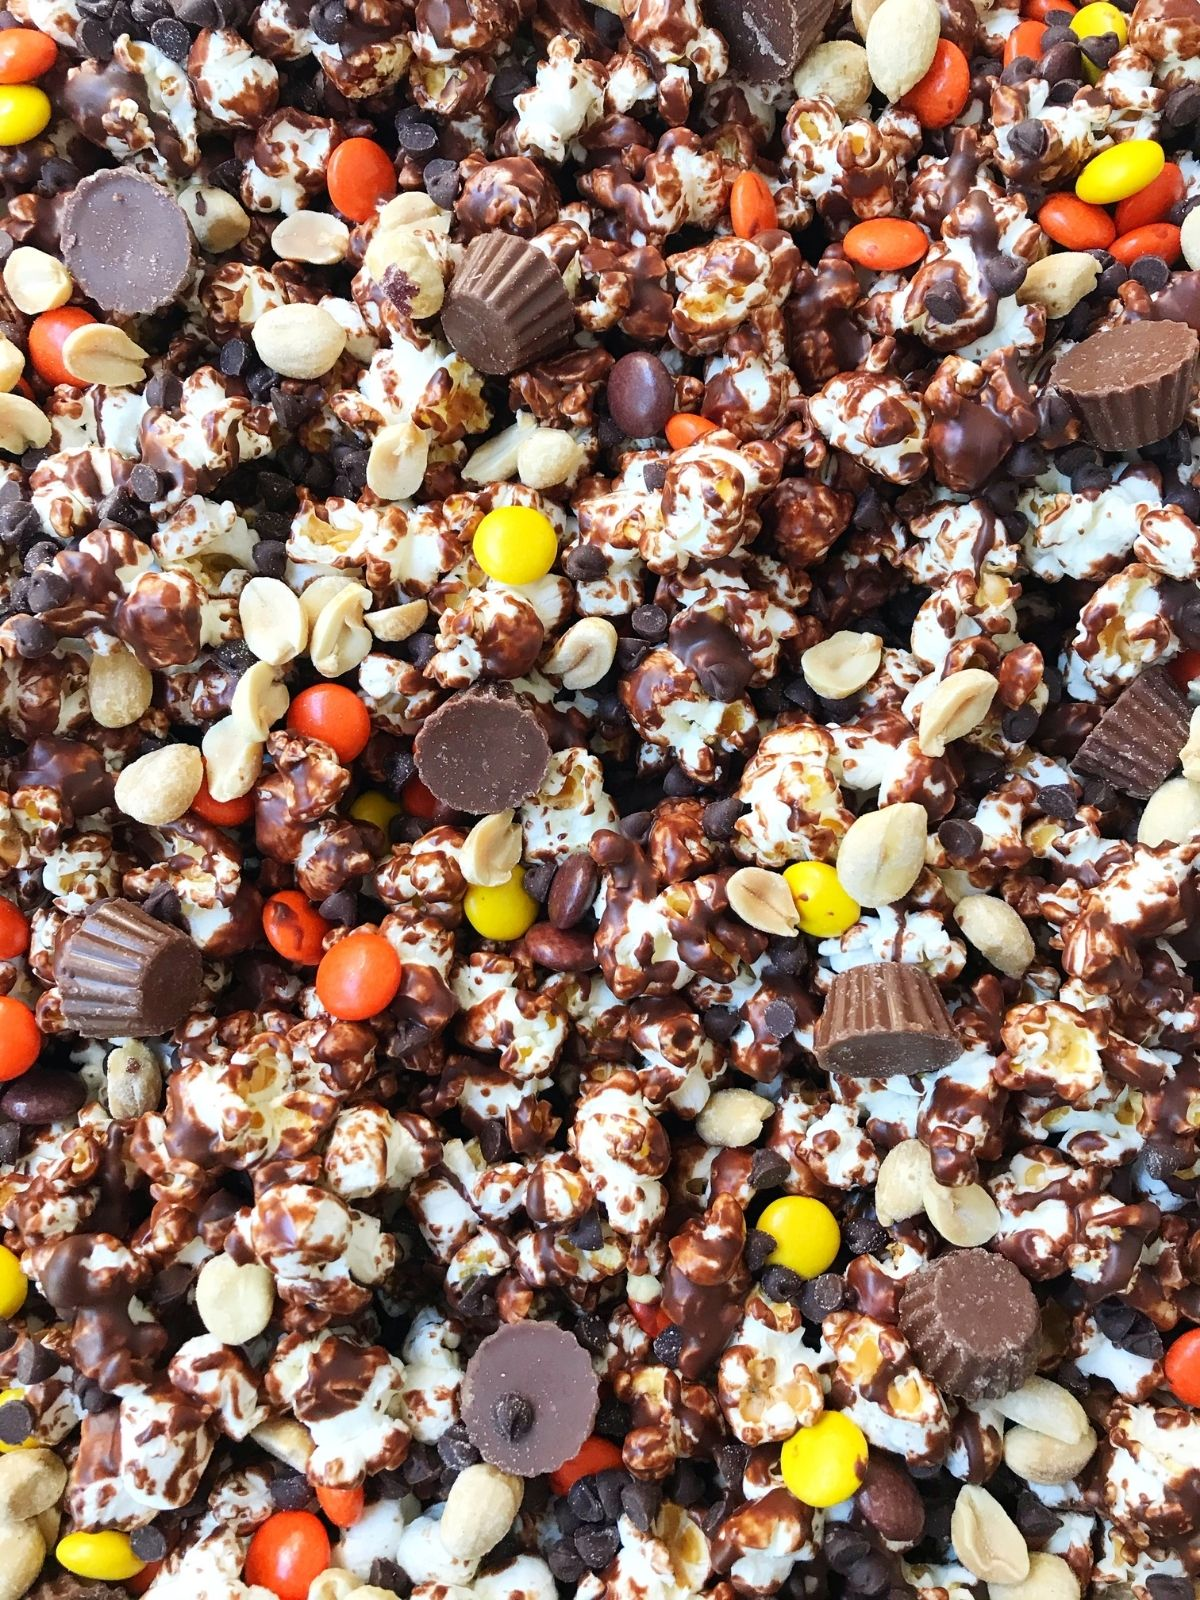 sheet pan of chocolate-coated popcorn